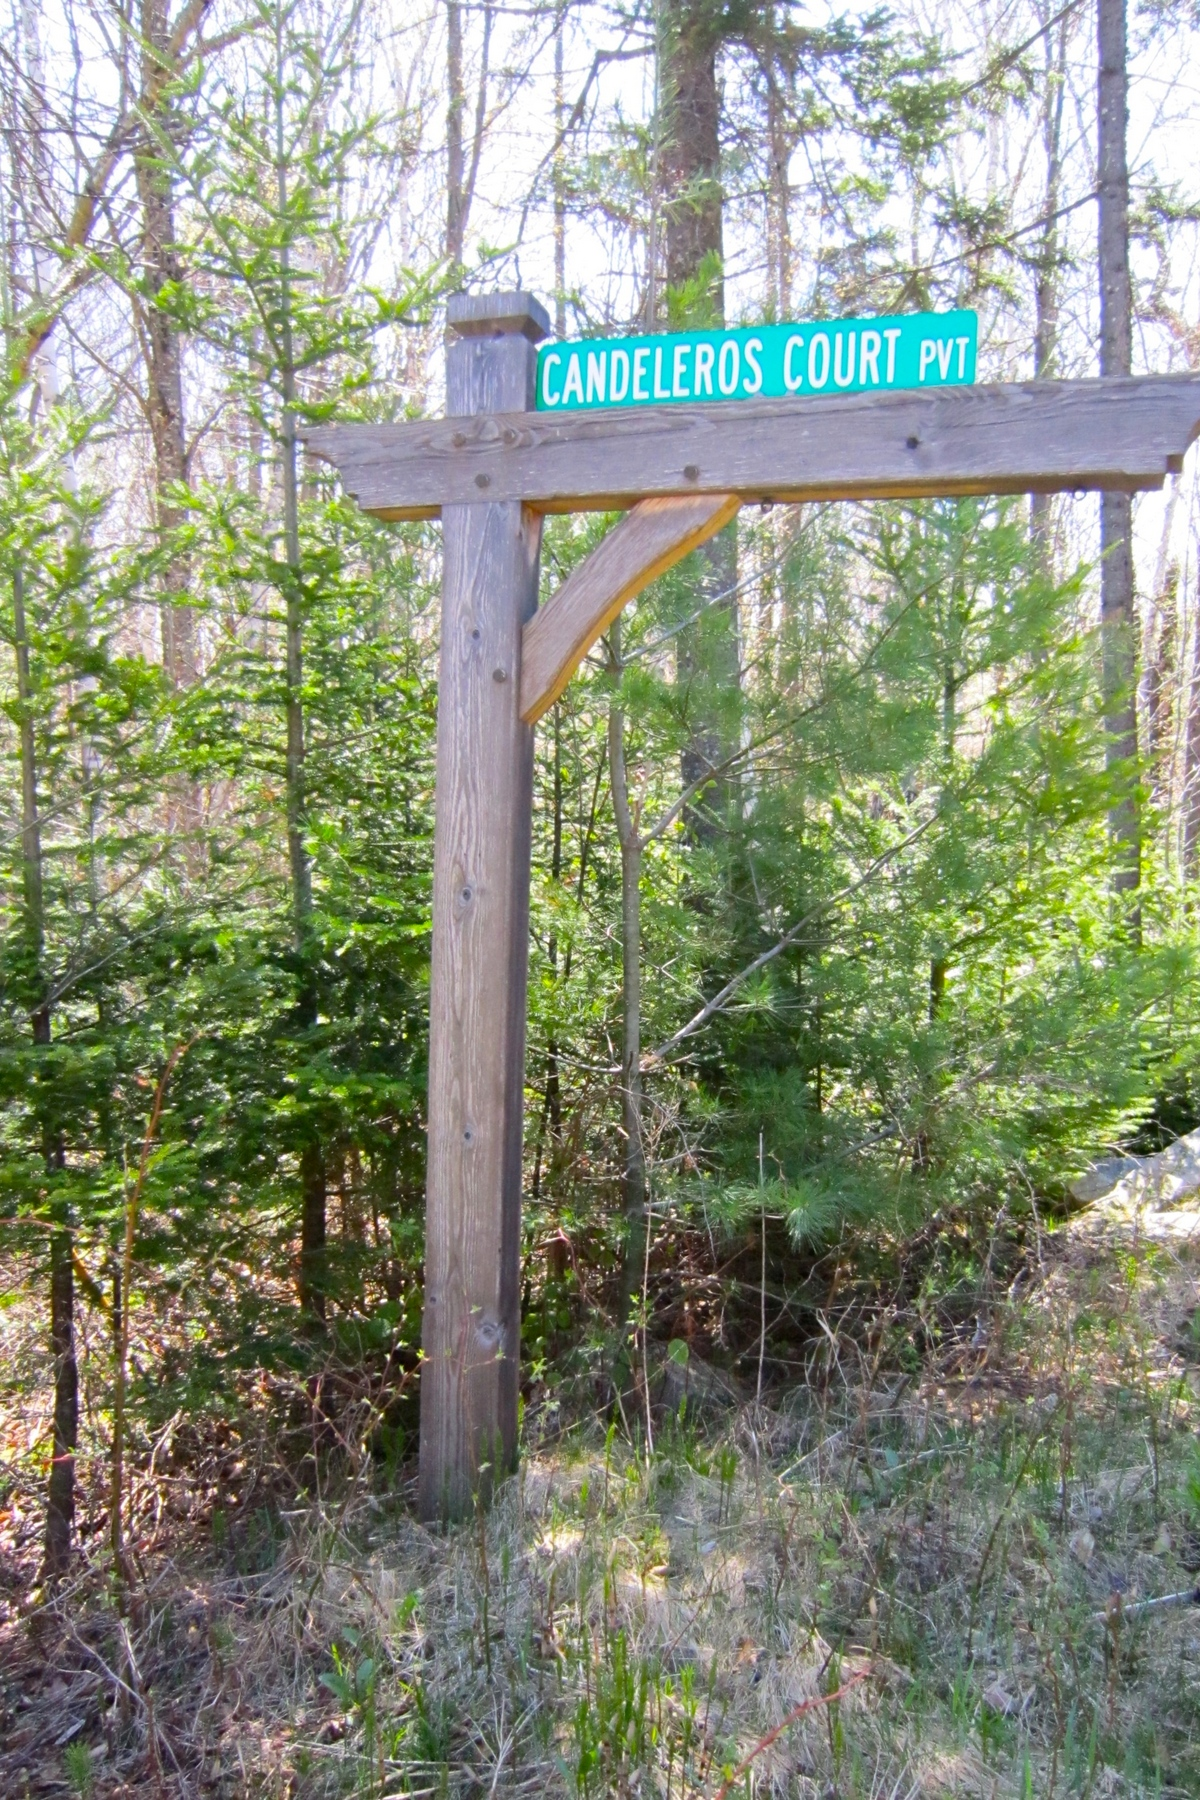 Compra di terreno in Lots 2-6 Candeleros Ct Lots 2-6, Ludlow, Vermont ,05149